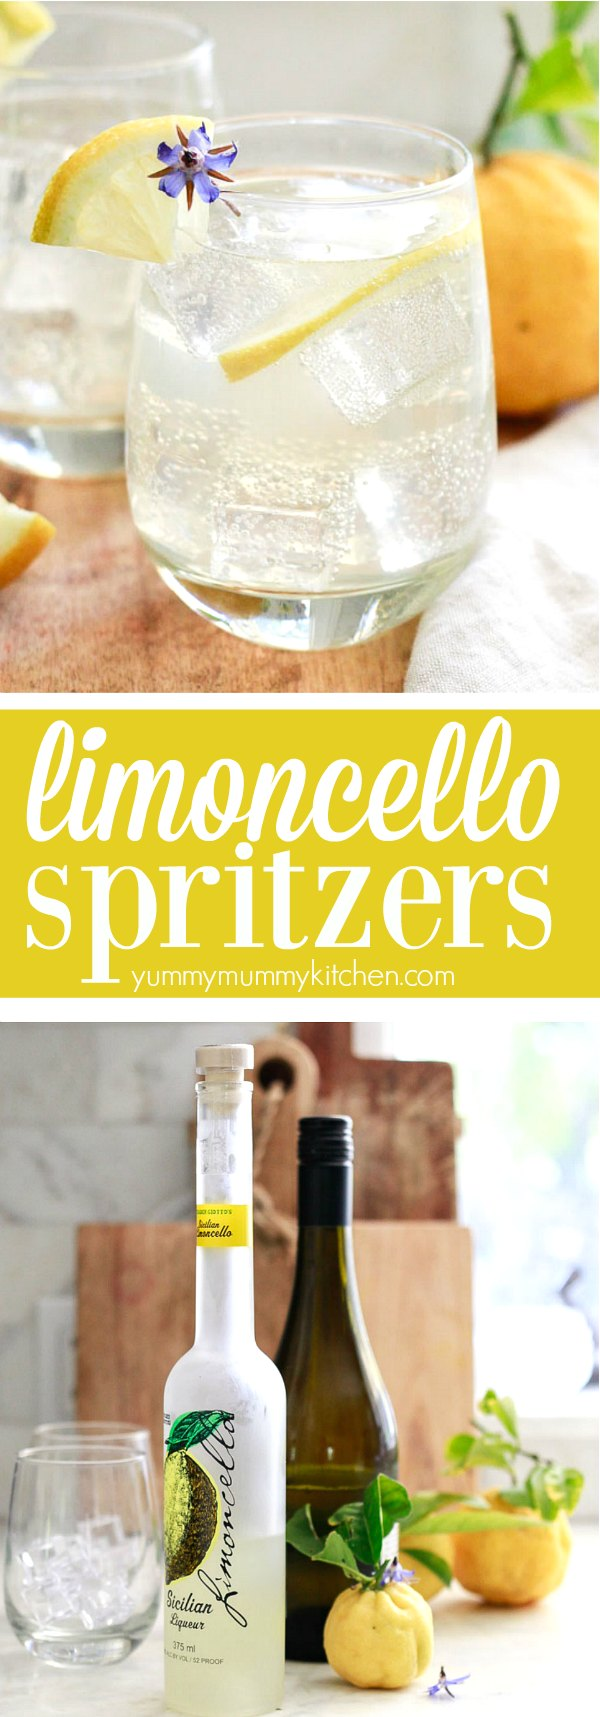 Limoncello Spritzer Yummy Mummy Kitchen